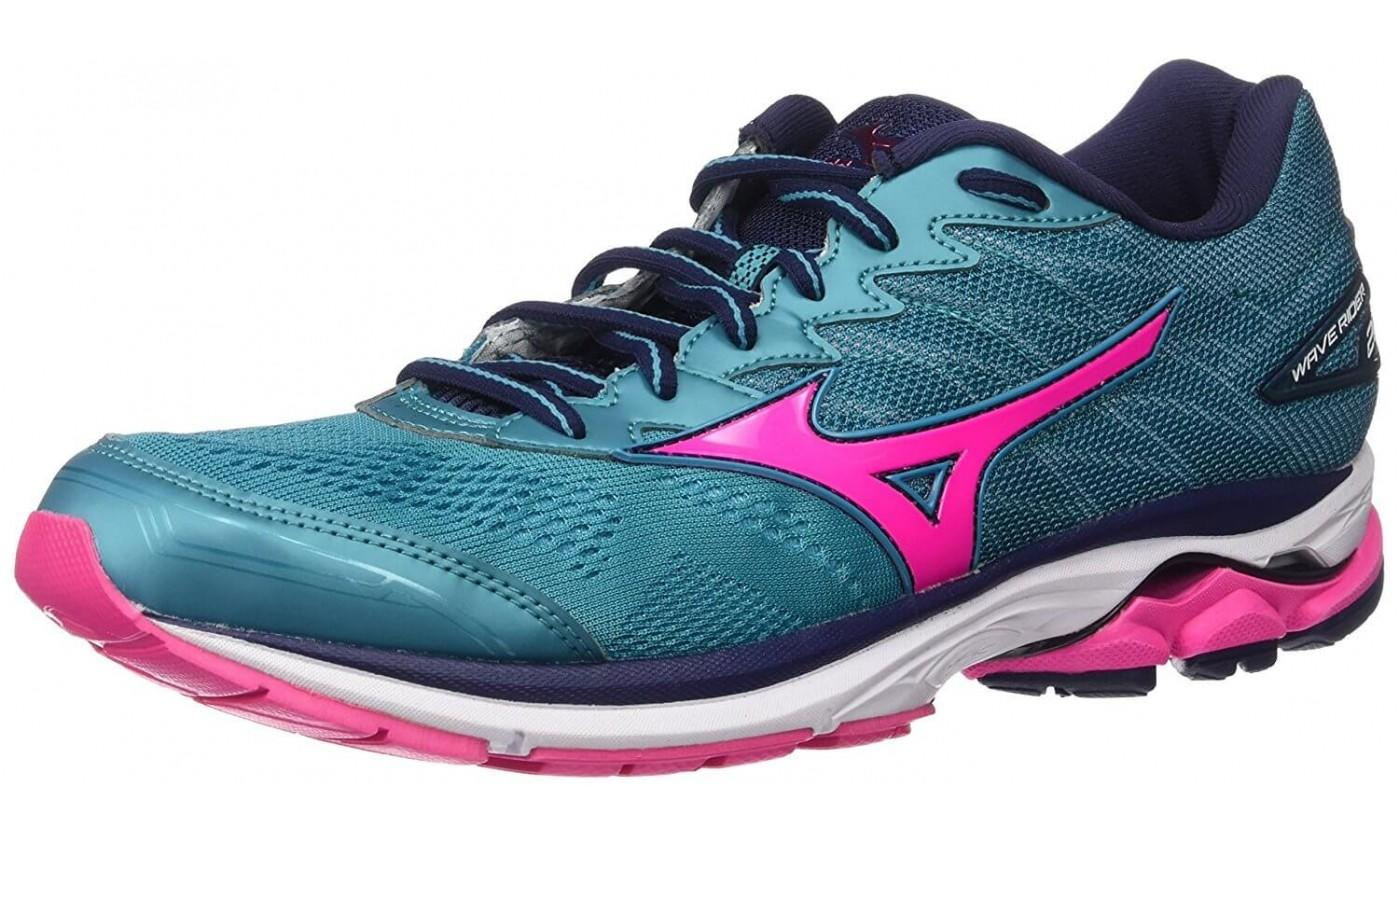 mizuno wave rider buy